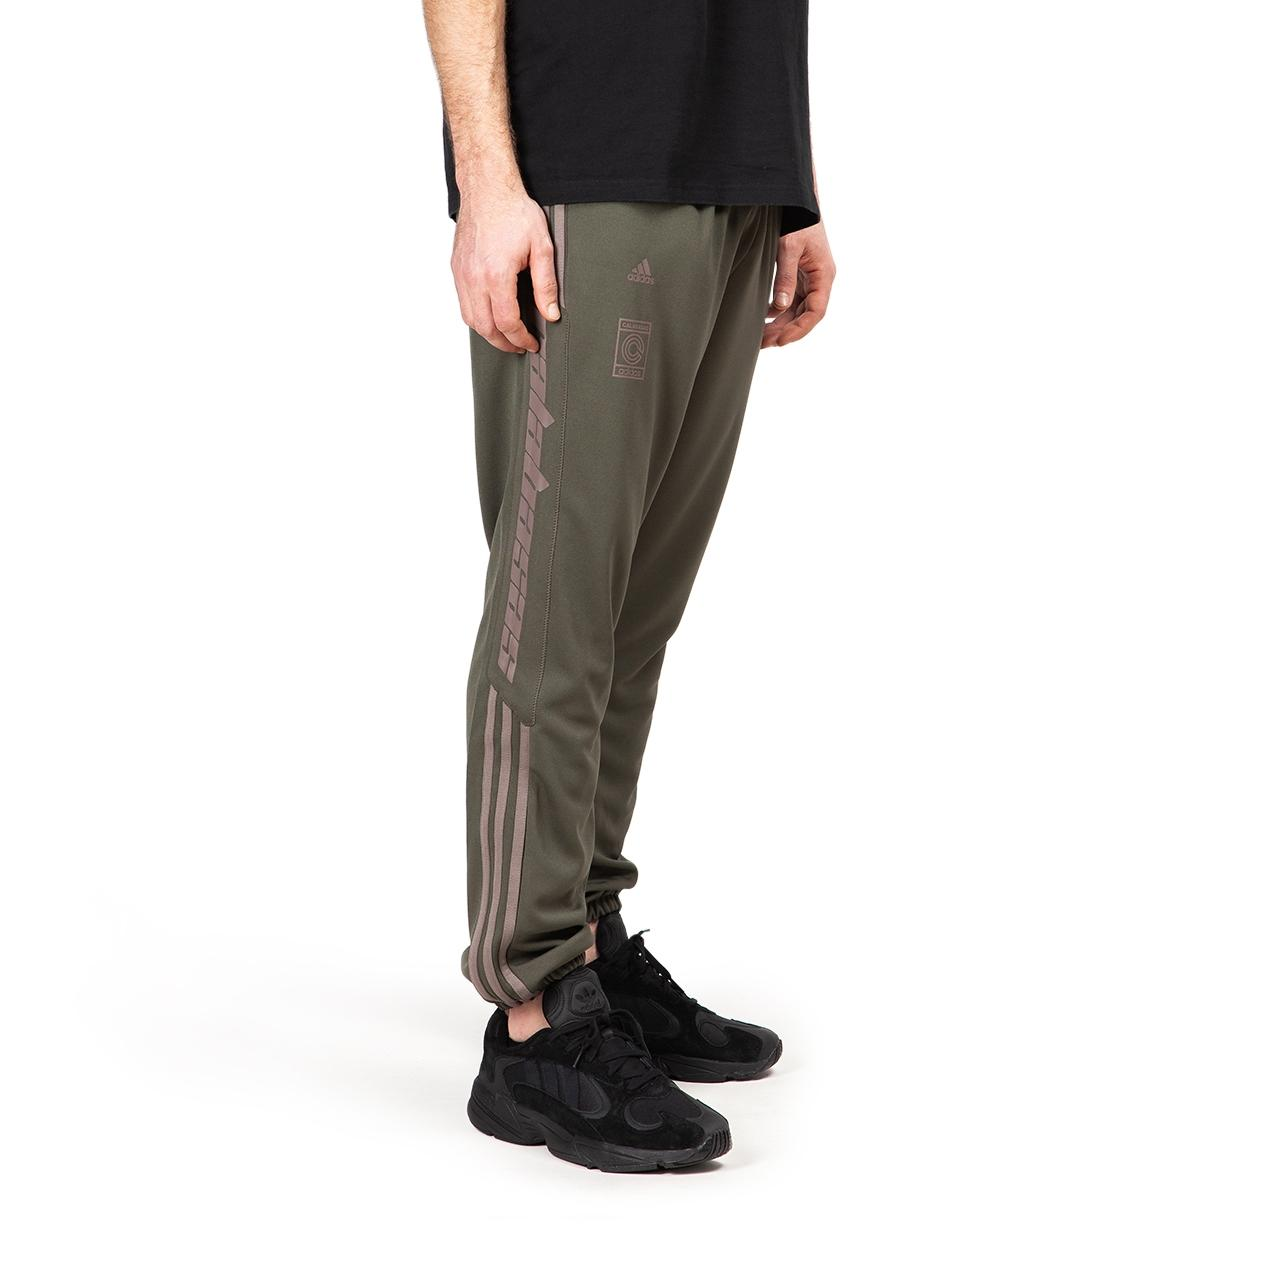 Adidas Beckenbauer Olive Green Track Pants